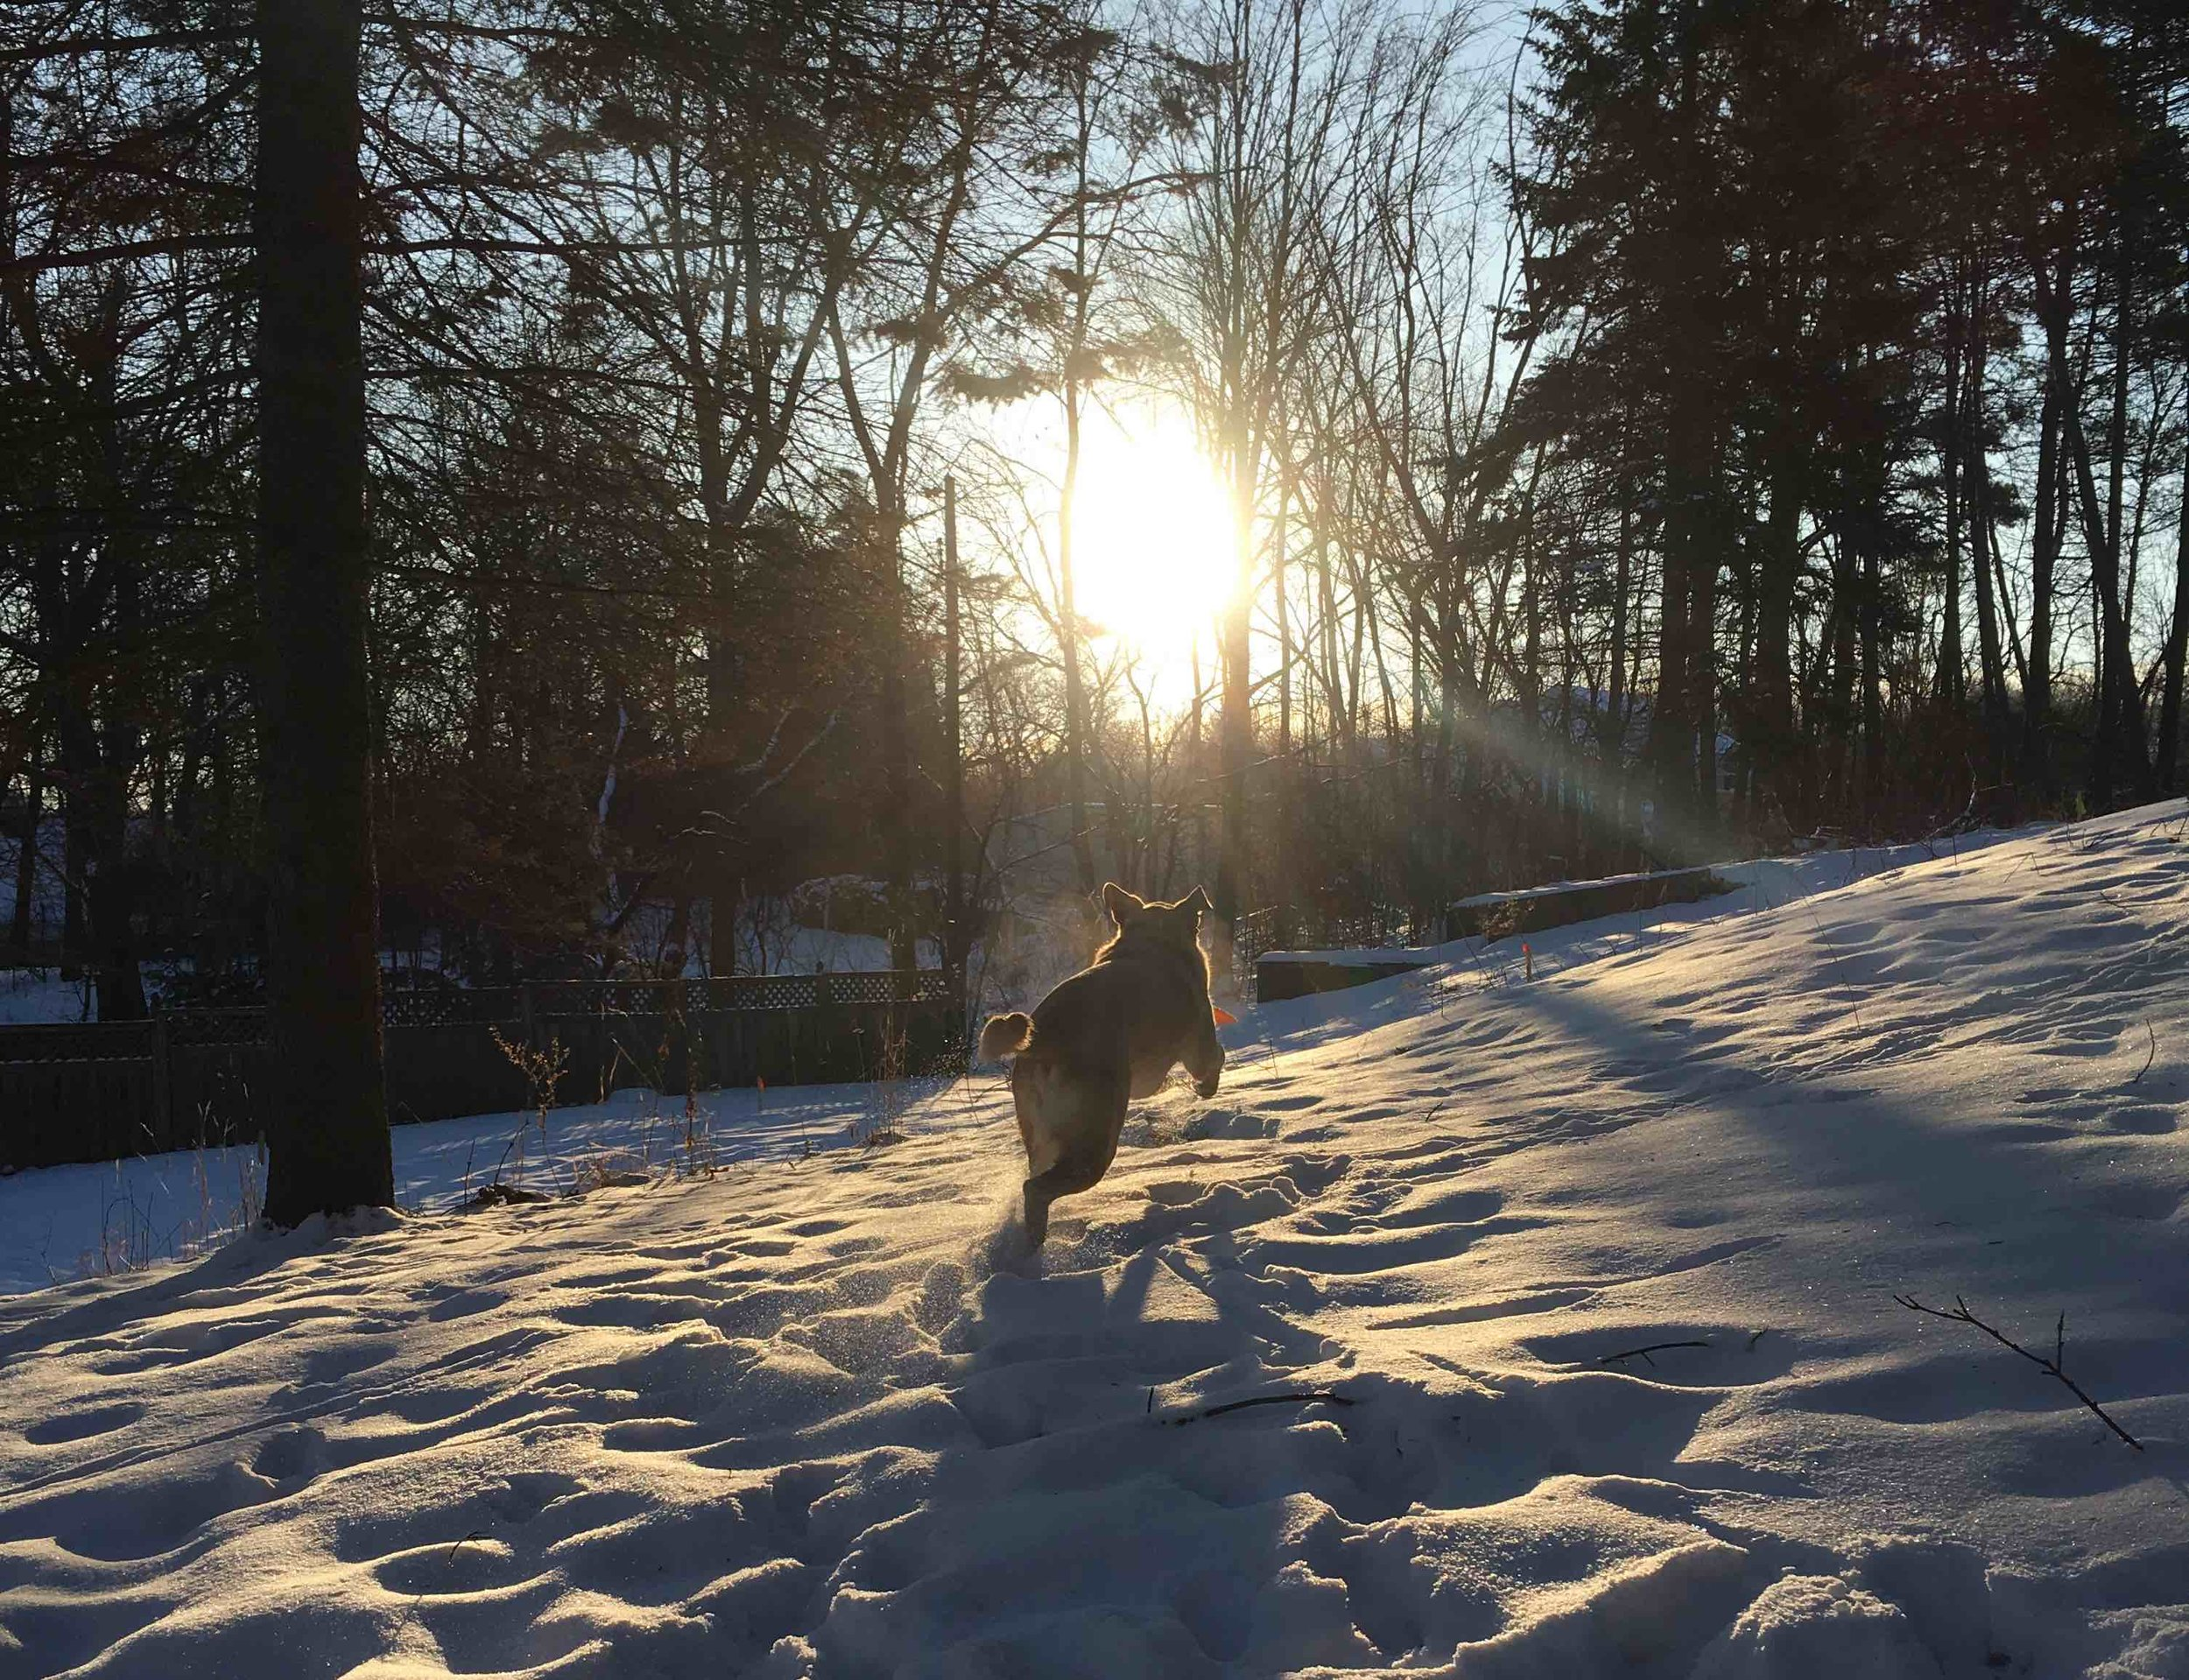 3: Seeing the joy your dog finds in bounding through the snow -